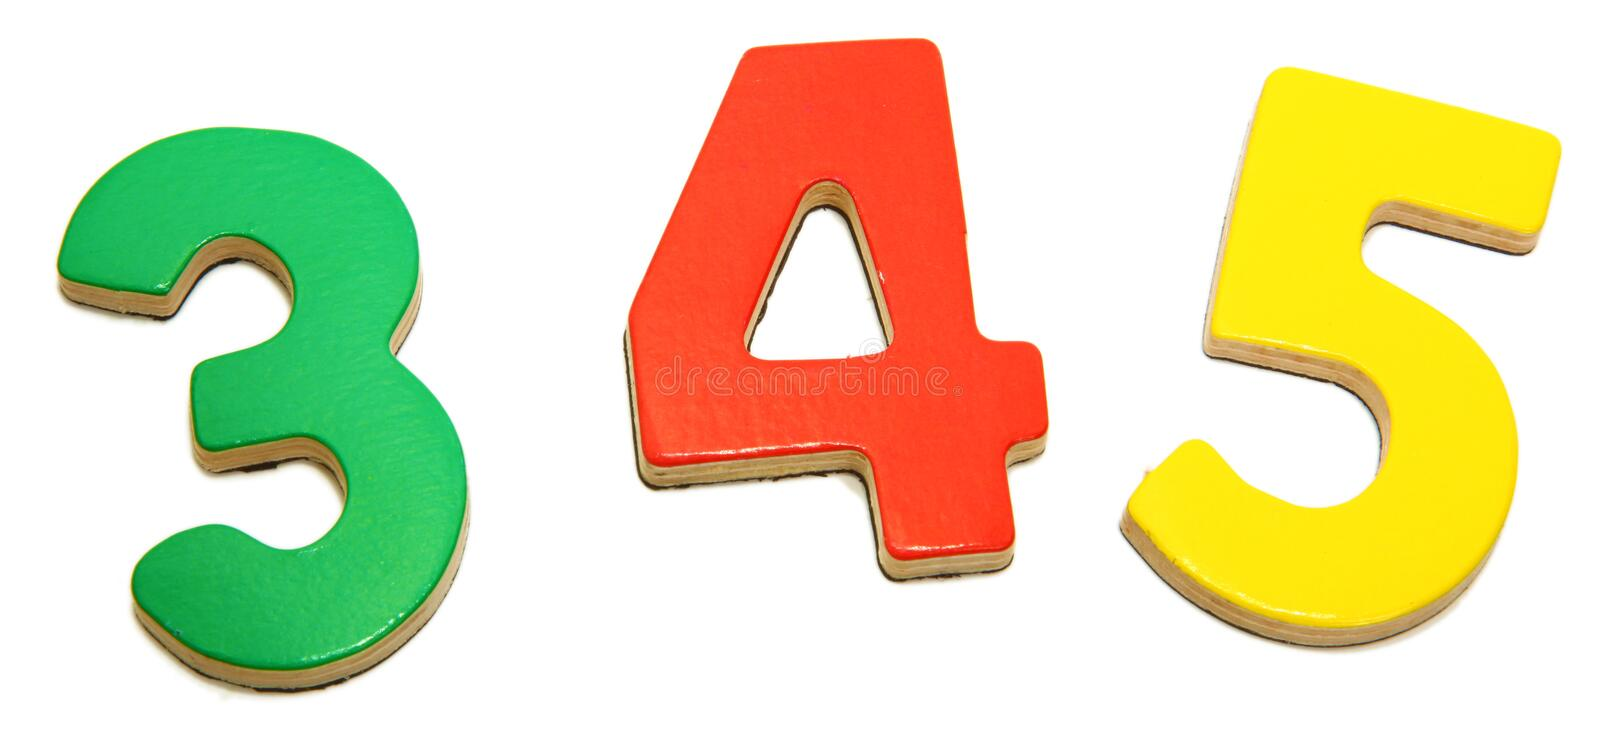 Colorful Magnetic Numbers 3 4 5